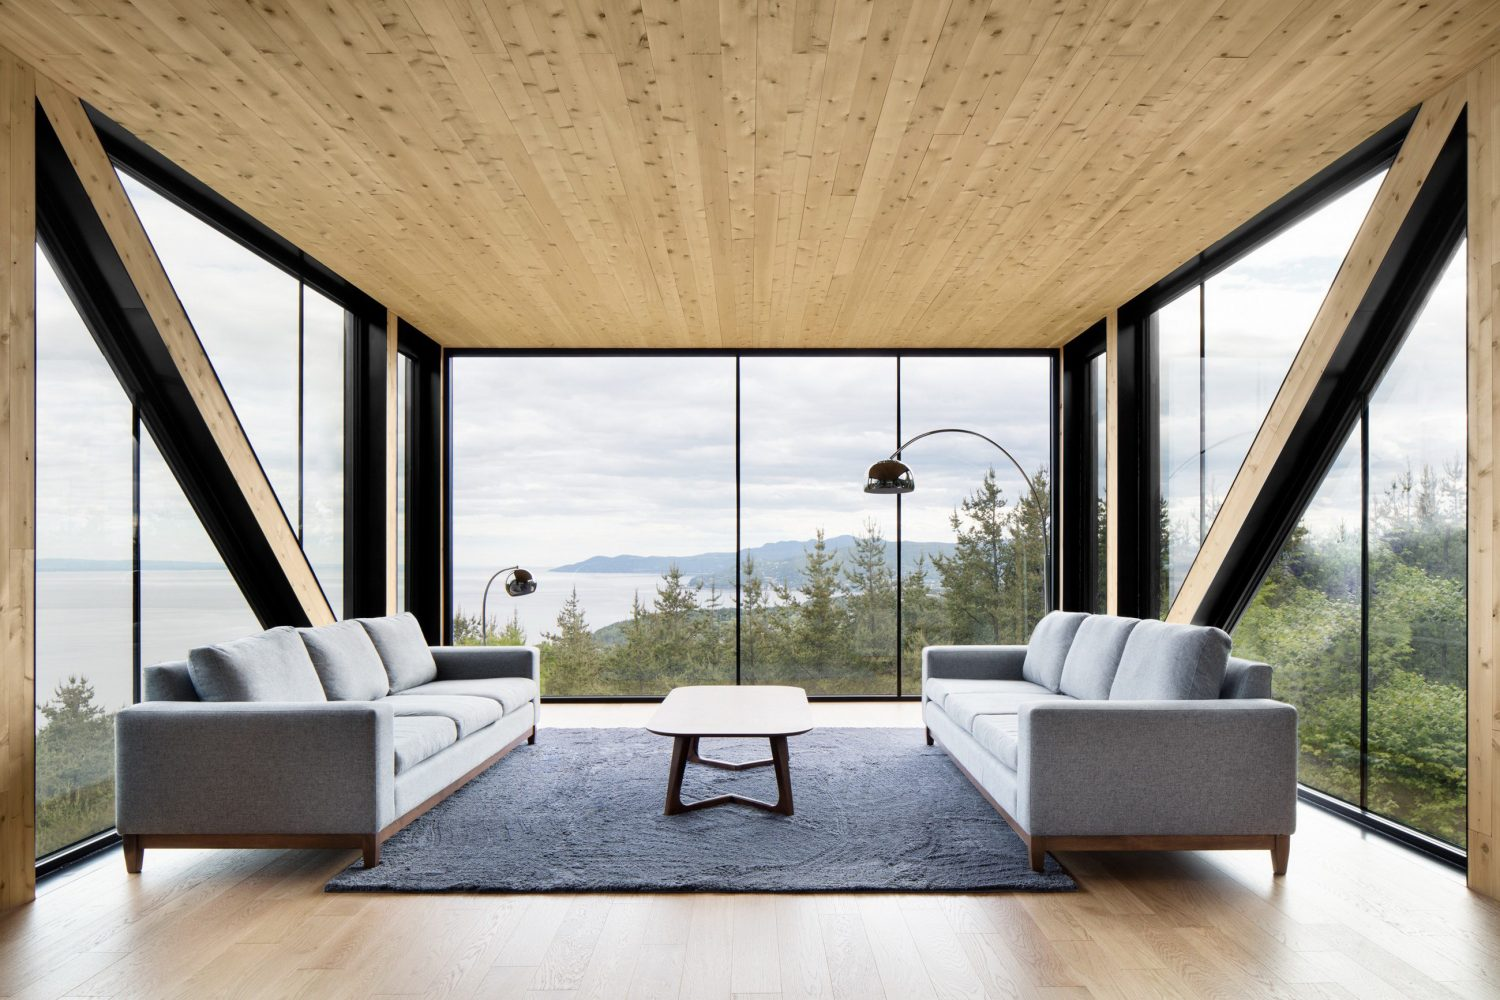 The Blanche Chalet by ACDF Architecture